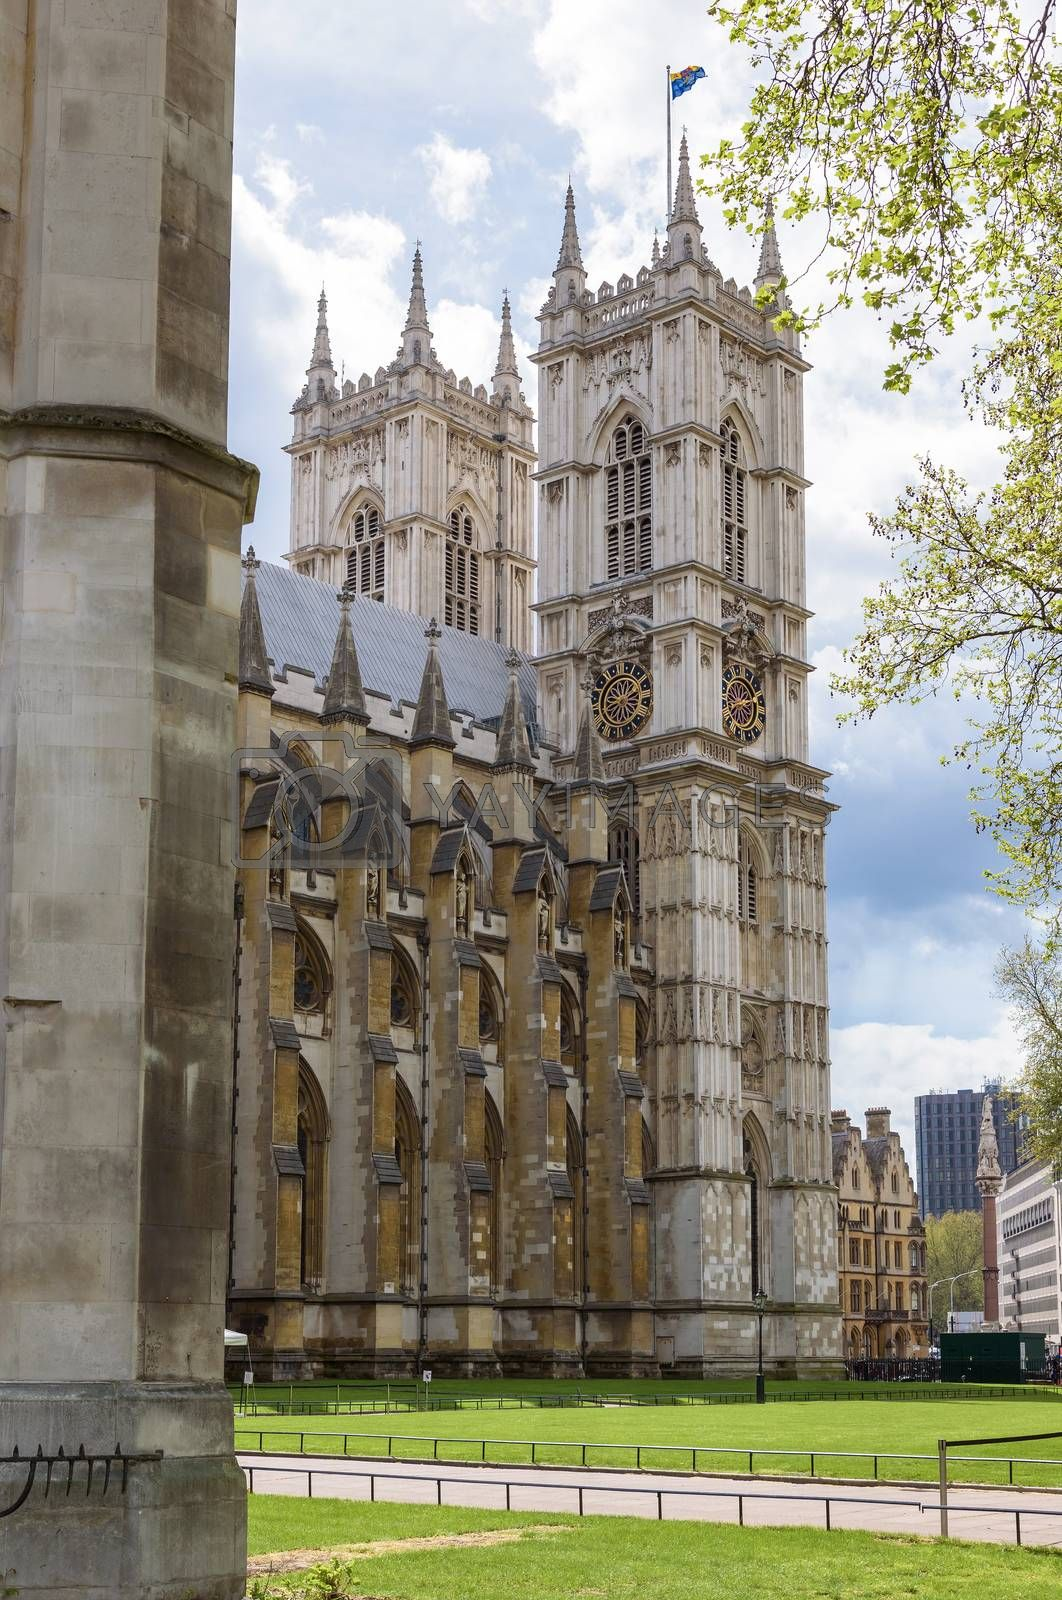 Towers of Westminster Abbey in London in UK